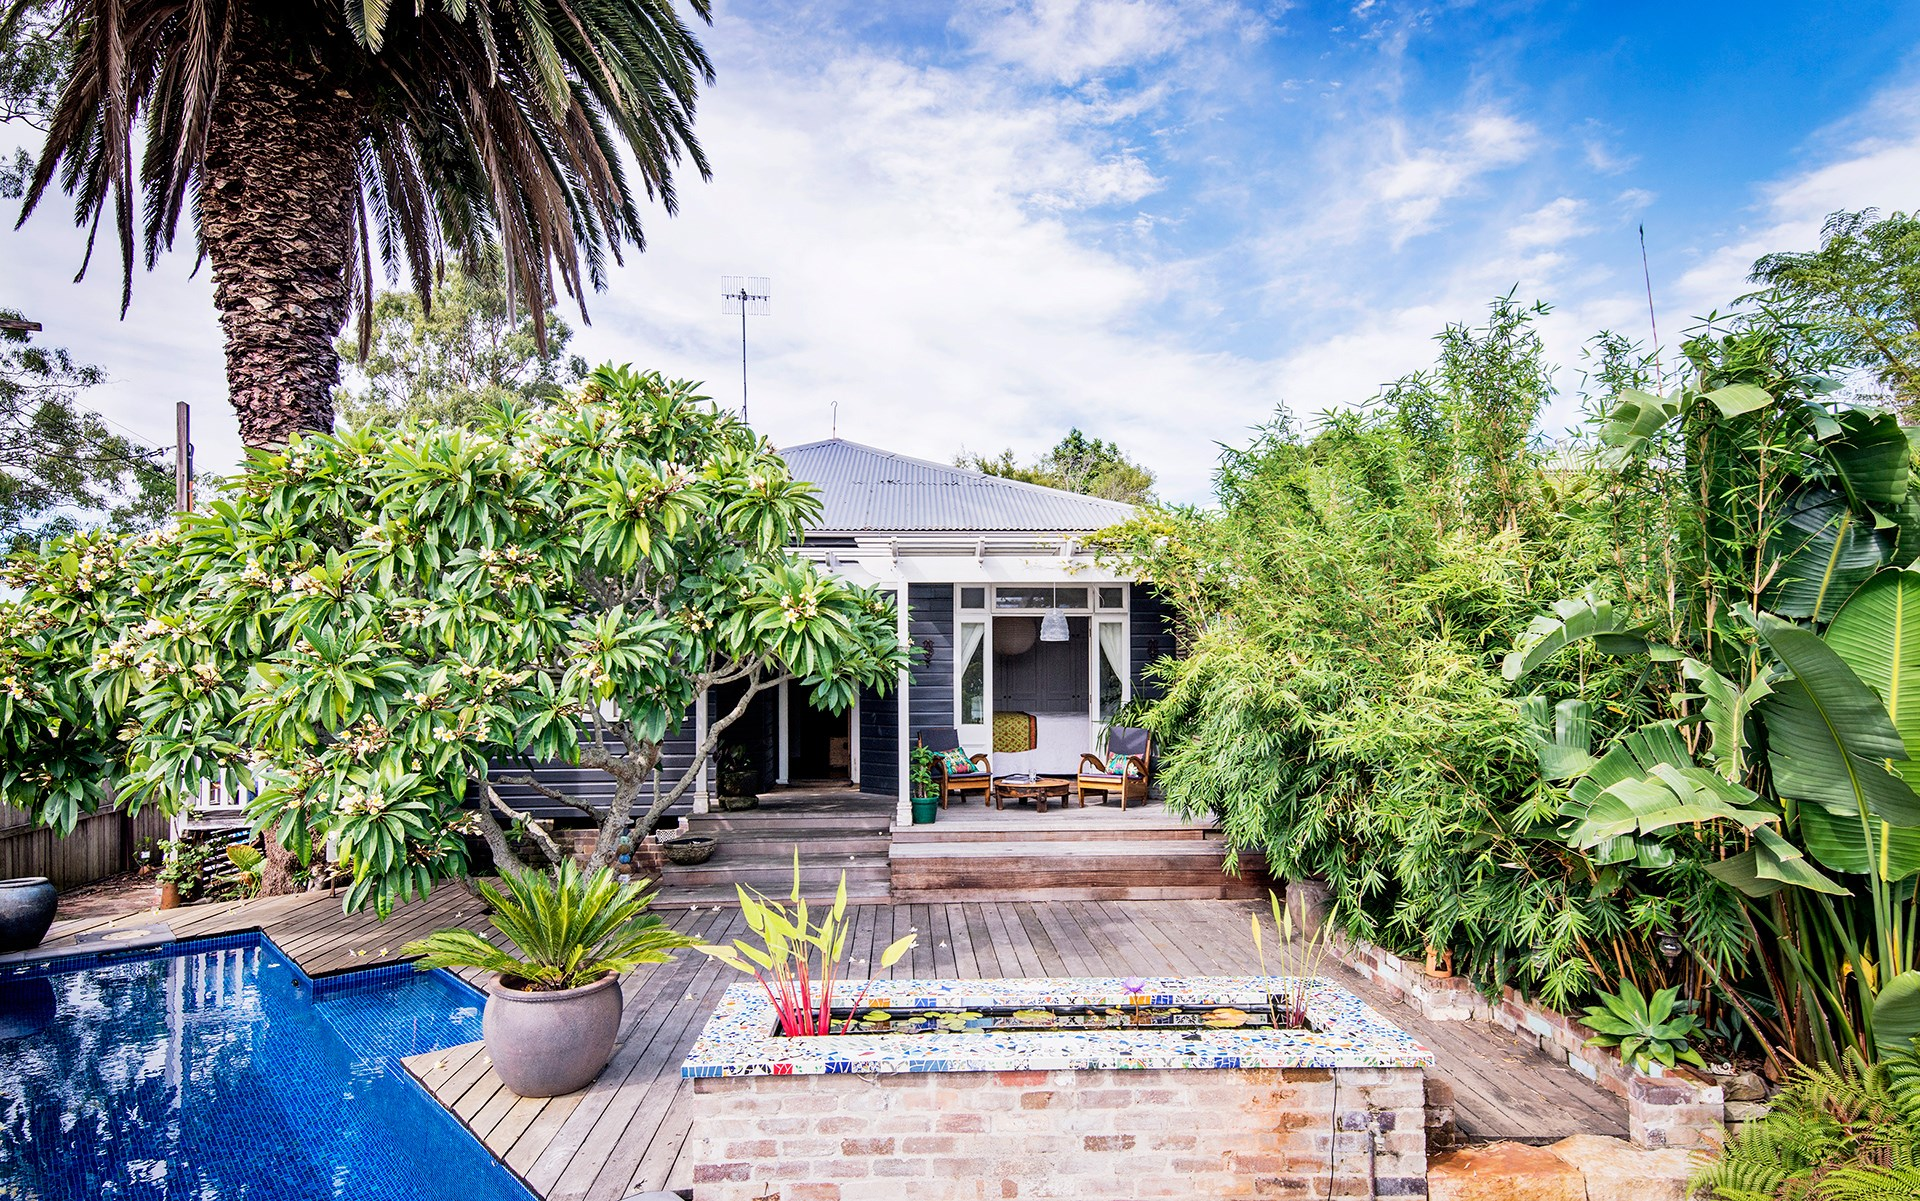 **Janice Whitington** This much-loved 99-year-old weatherboard in Brooklyn, NSW, is a treasure trove of eclectic delights. [See the full home here](http://www.homestolove.com.au/eclectic-style-shines-in-this-charming-weatherboard-cottage-3919) or [vote for this home](http://www.homestolove.com.au/homes-reader-home-of-the-year-4499).